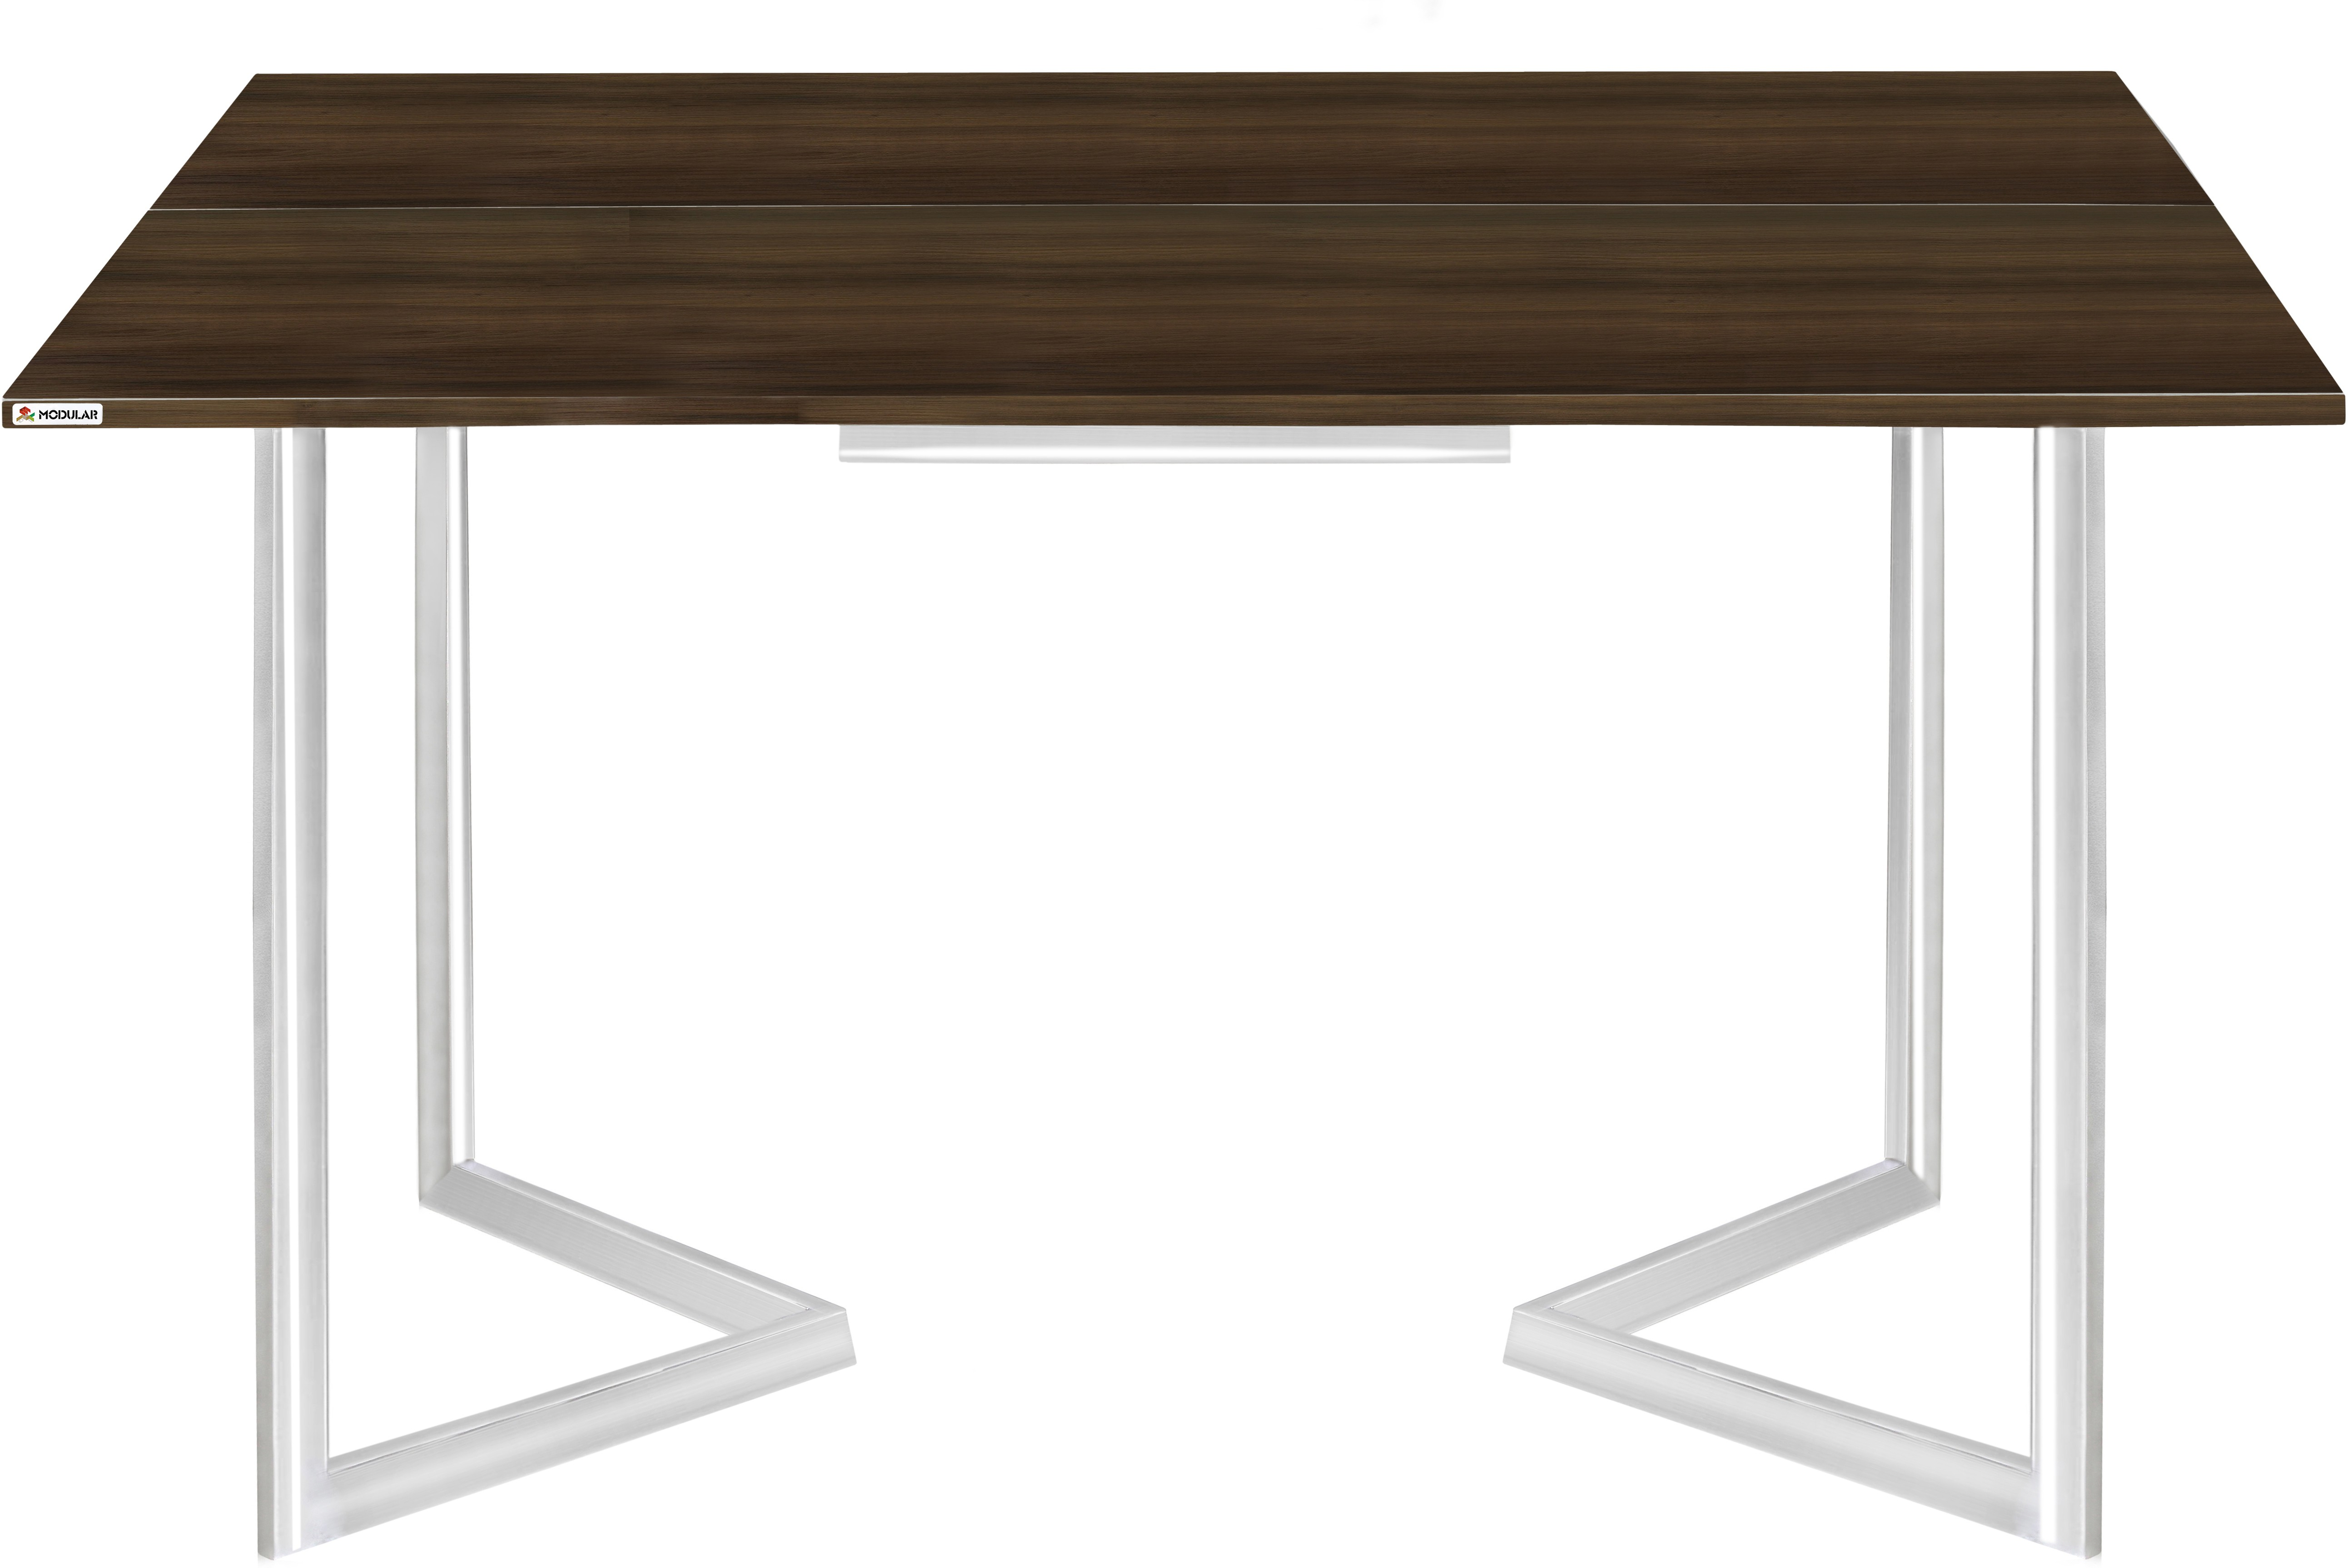 View EPL MODULAR P0005 Engineered Wood 6 Seater Dining Table(Finish Color - Chocolate Brown) Furniture (EPL Modular)